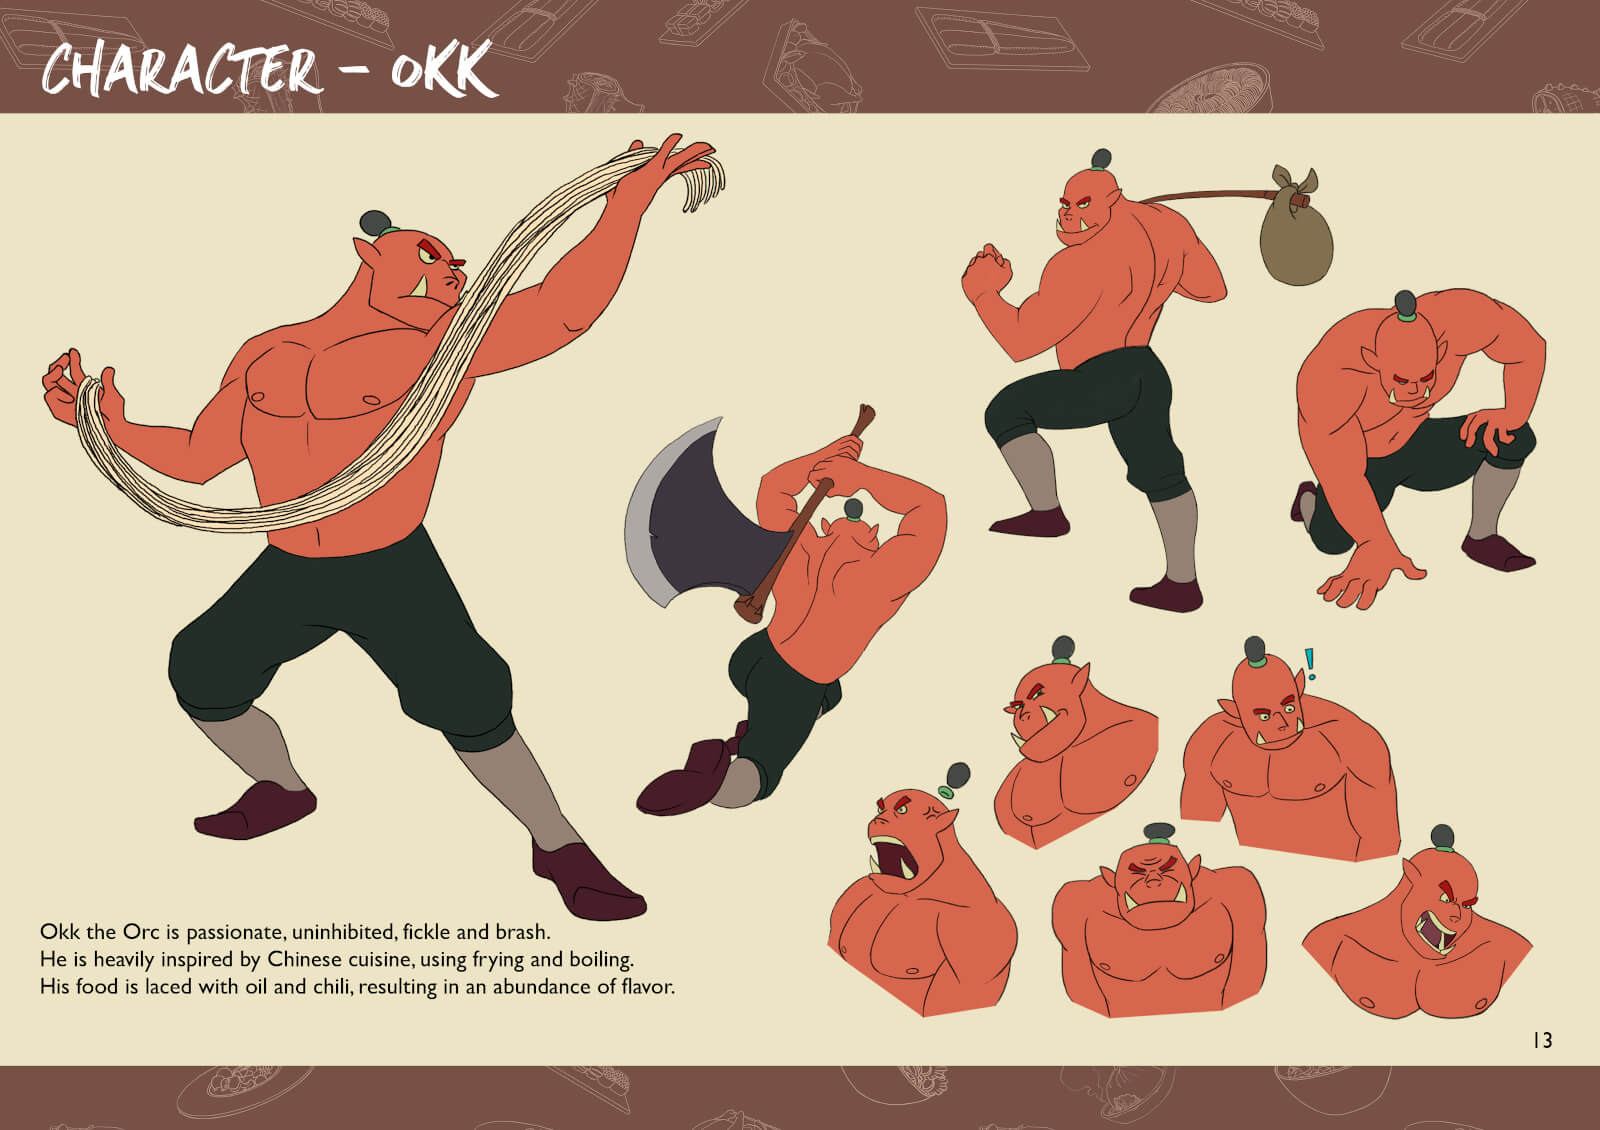 Orc characters in various action poses